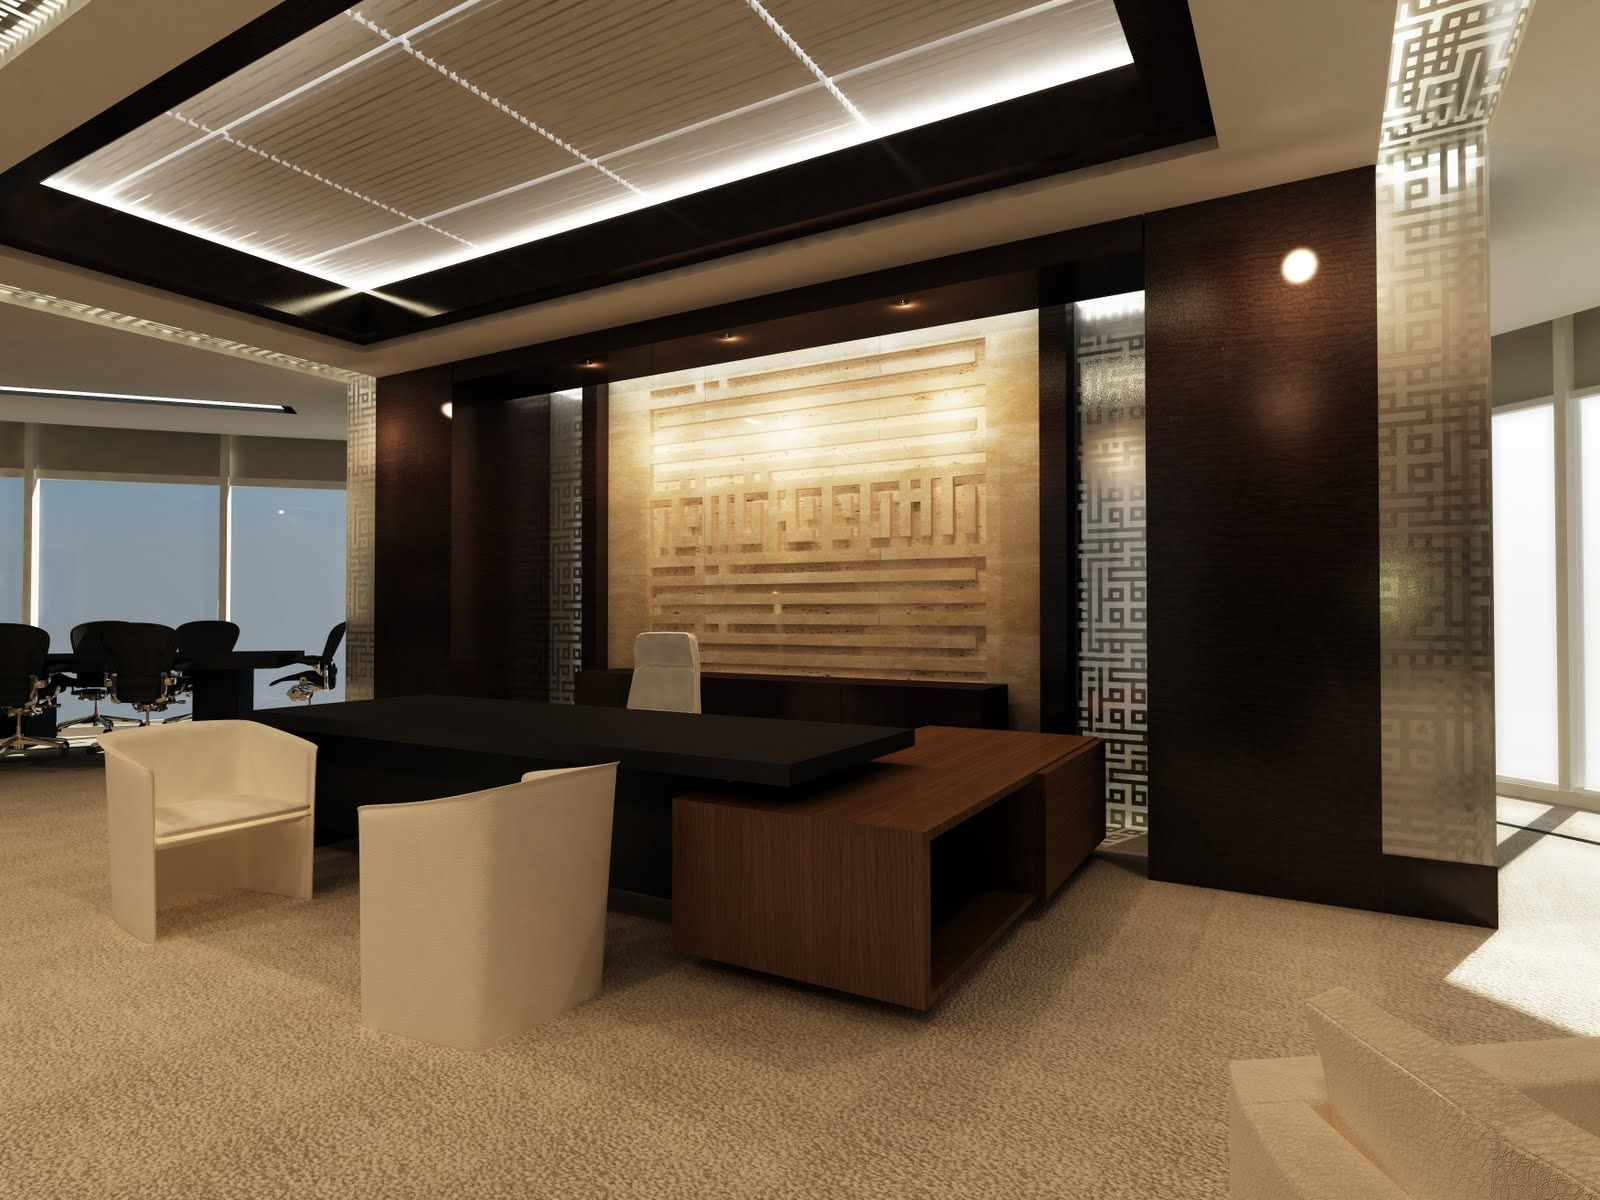 Office interior design intended for office interior design for Big office design